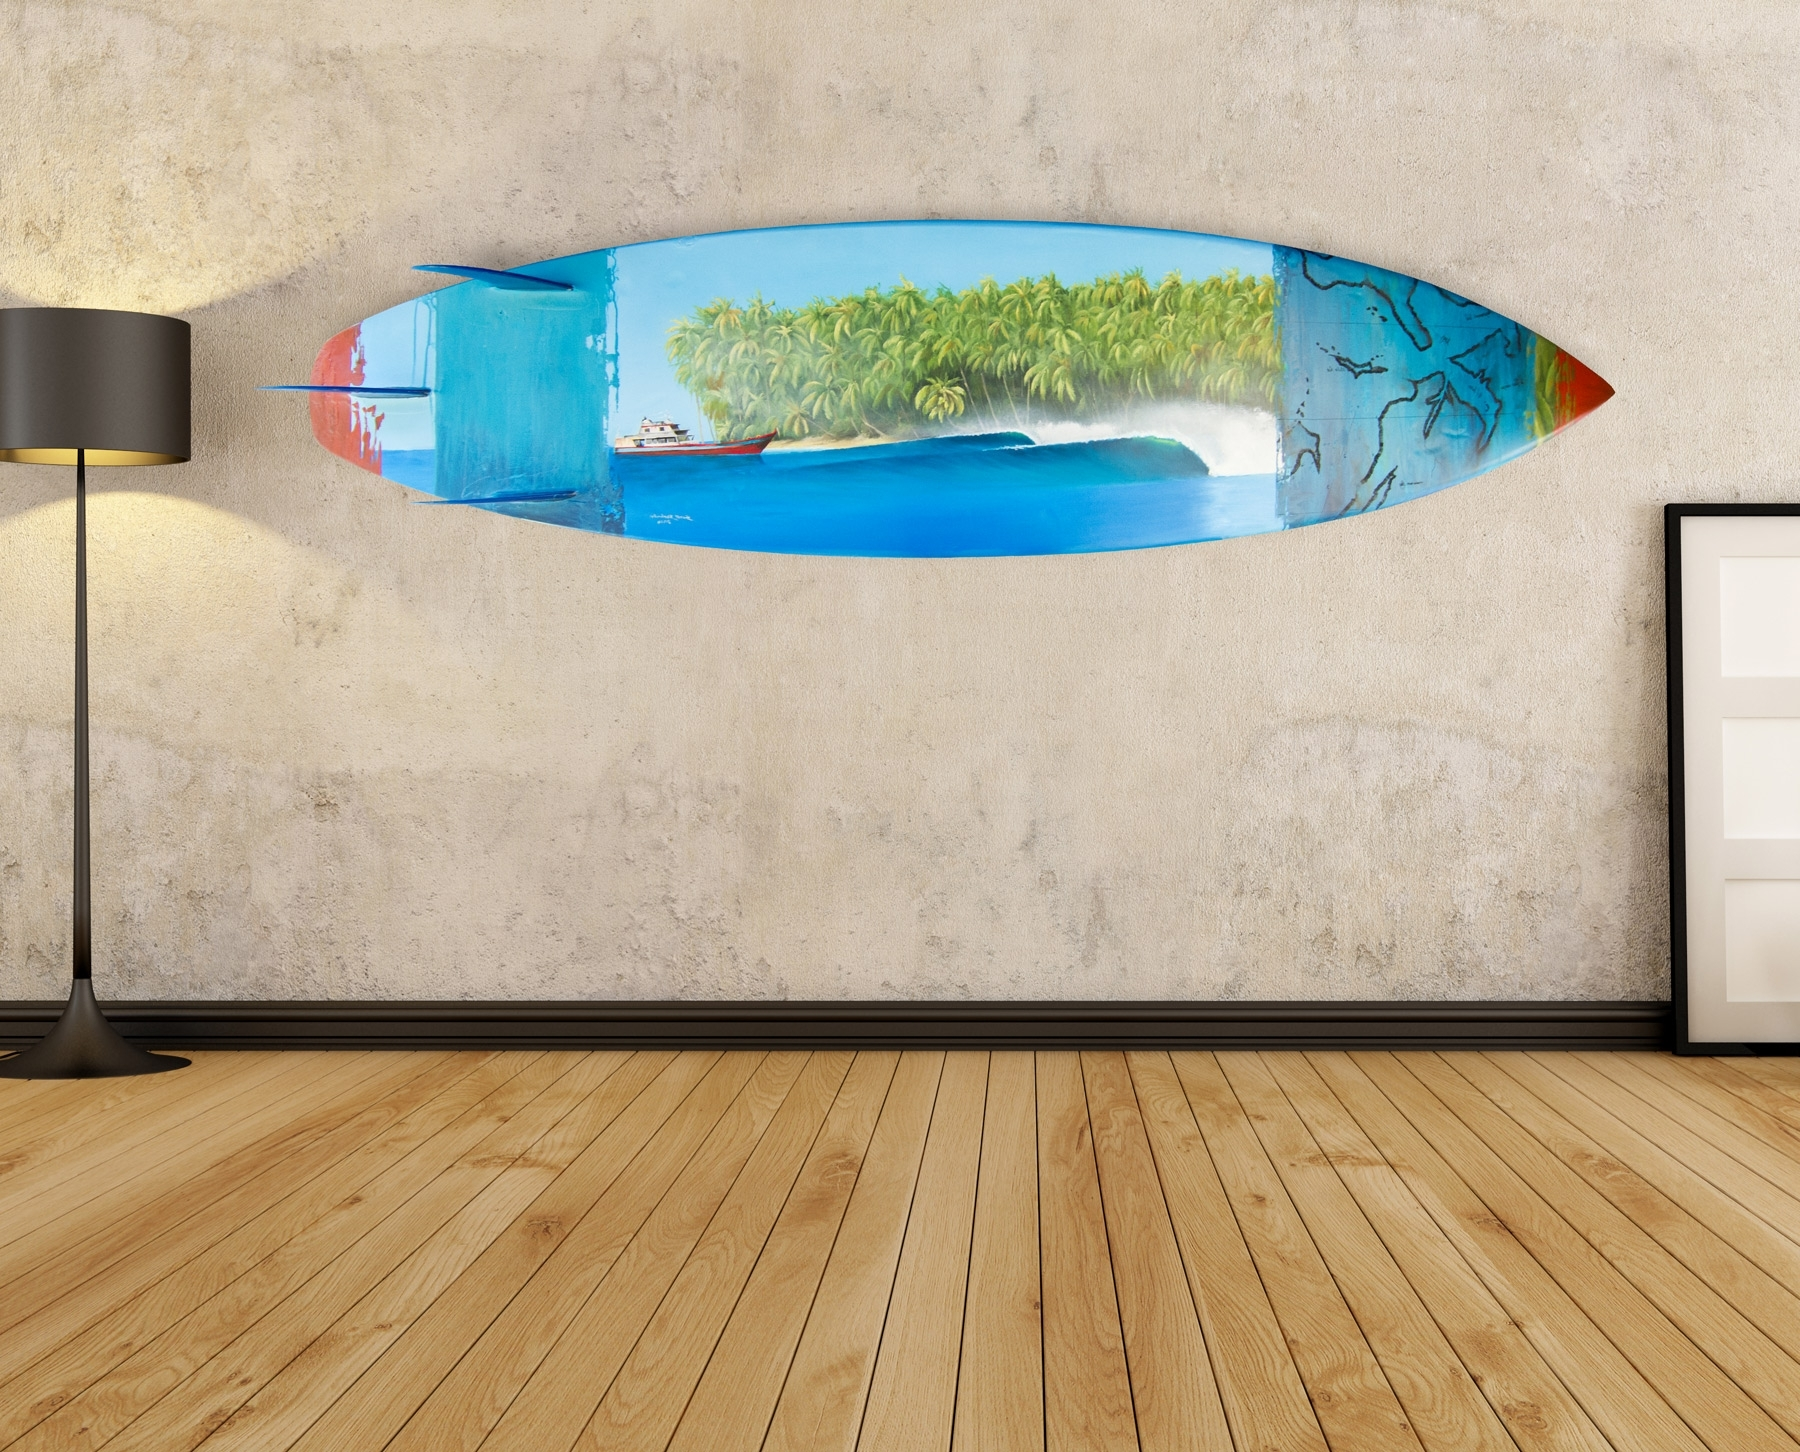 Surfboard Wall Art pertaining to Most Recently Released Surfboard Wal Vintage Surfboard Wall Art - Wall Decoration And Wall